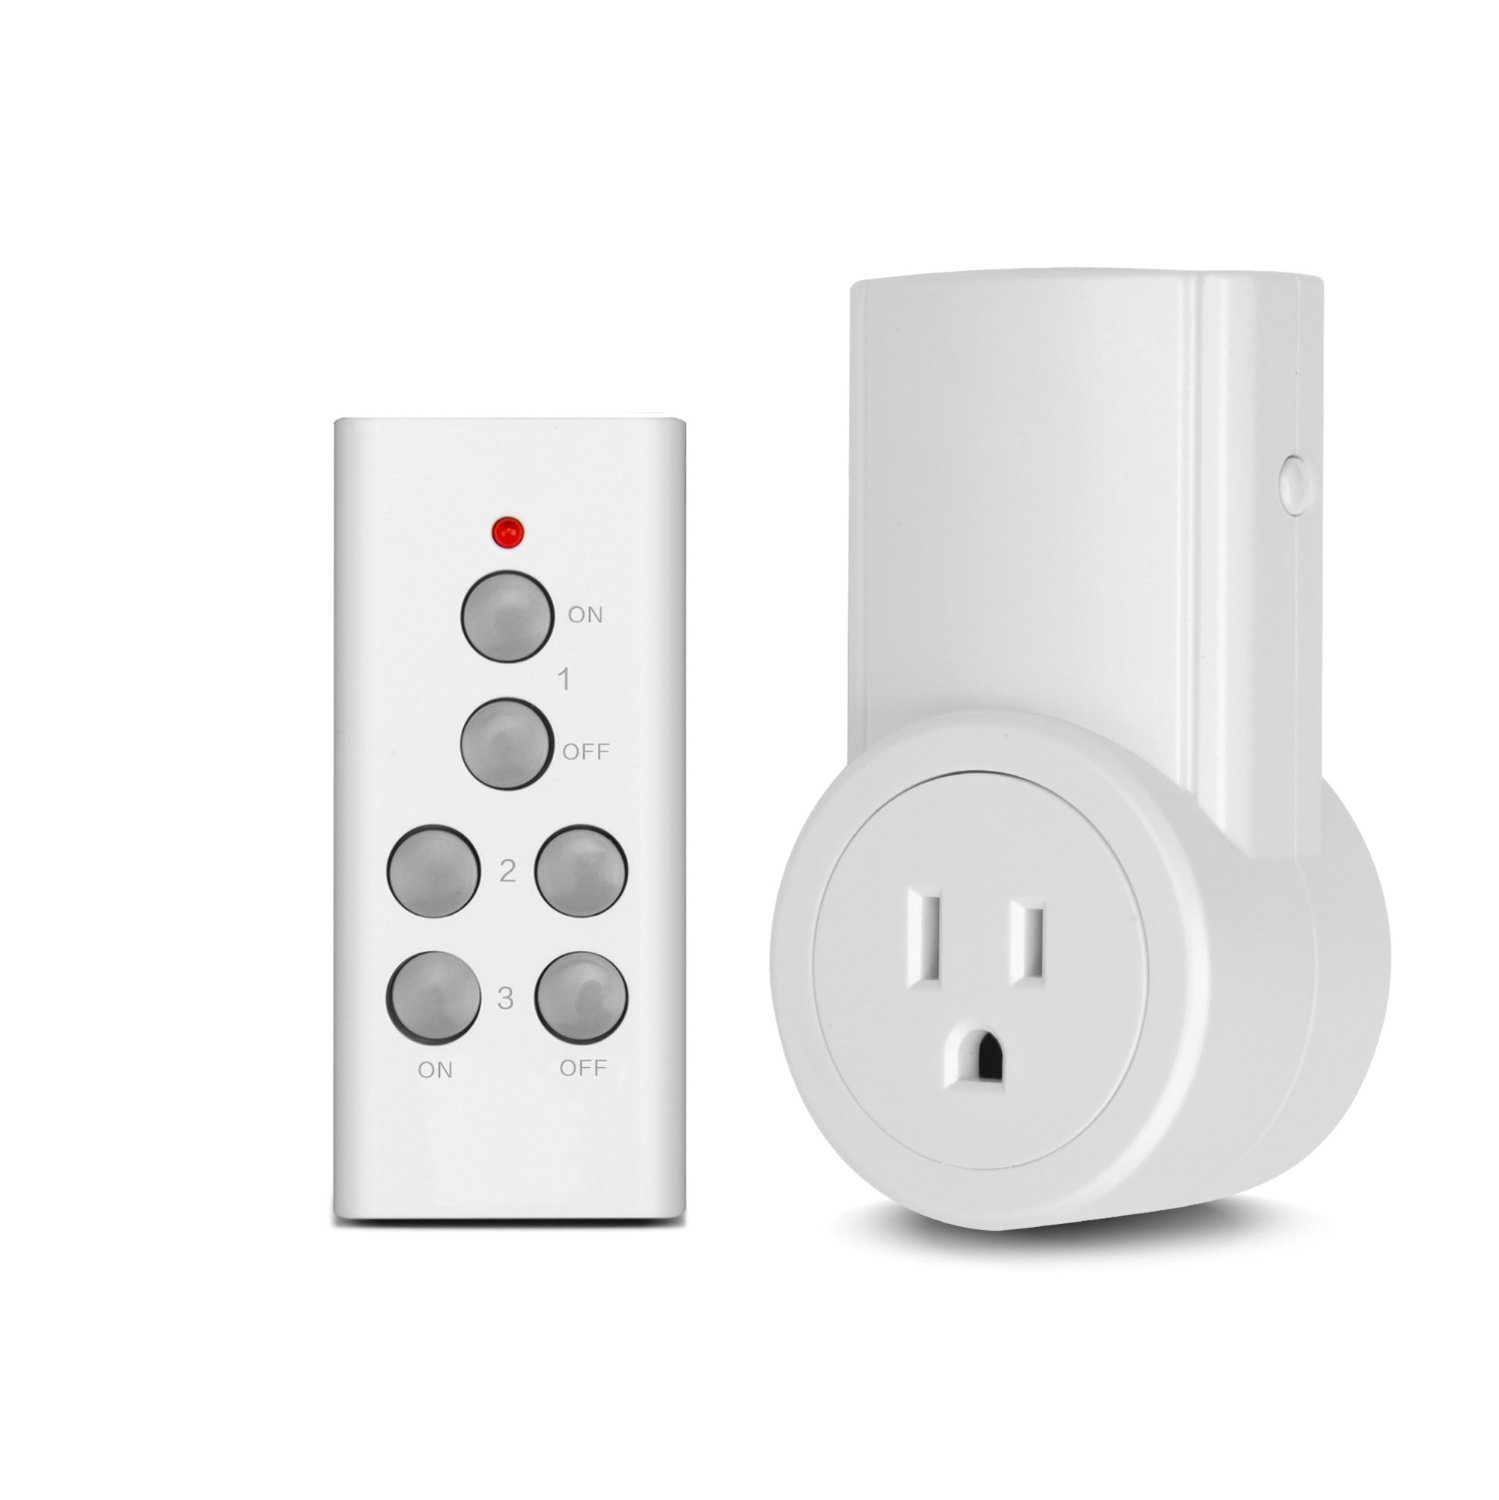 Etekcity Remote Control Outlet Wireless Light Switch for Household Appliances, Unlimited Connections, FCC ETL Listed, White (Learning Code, 1Rx-1Tx)